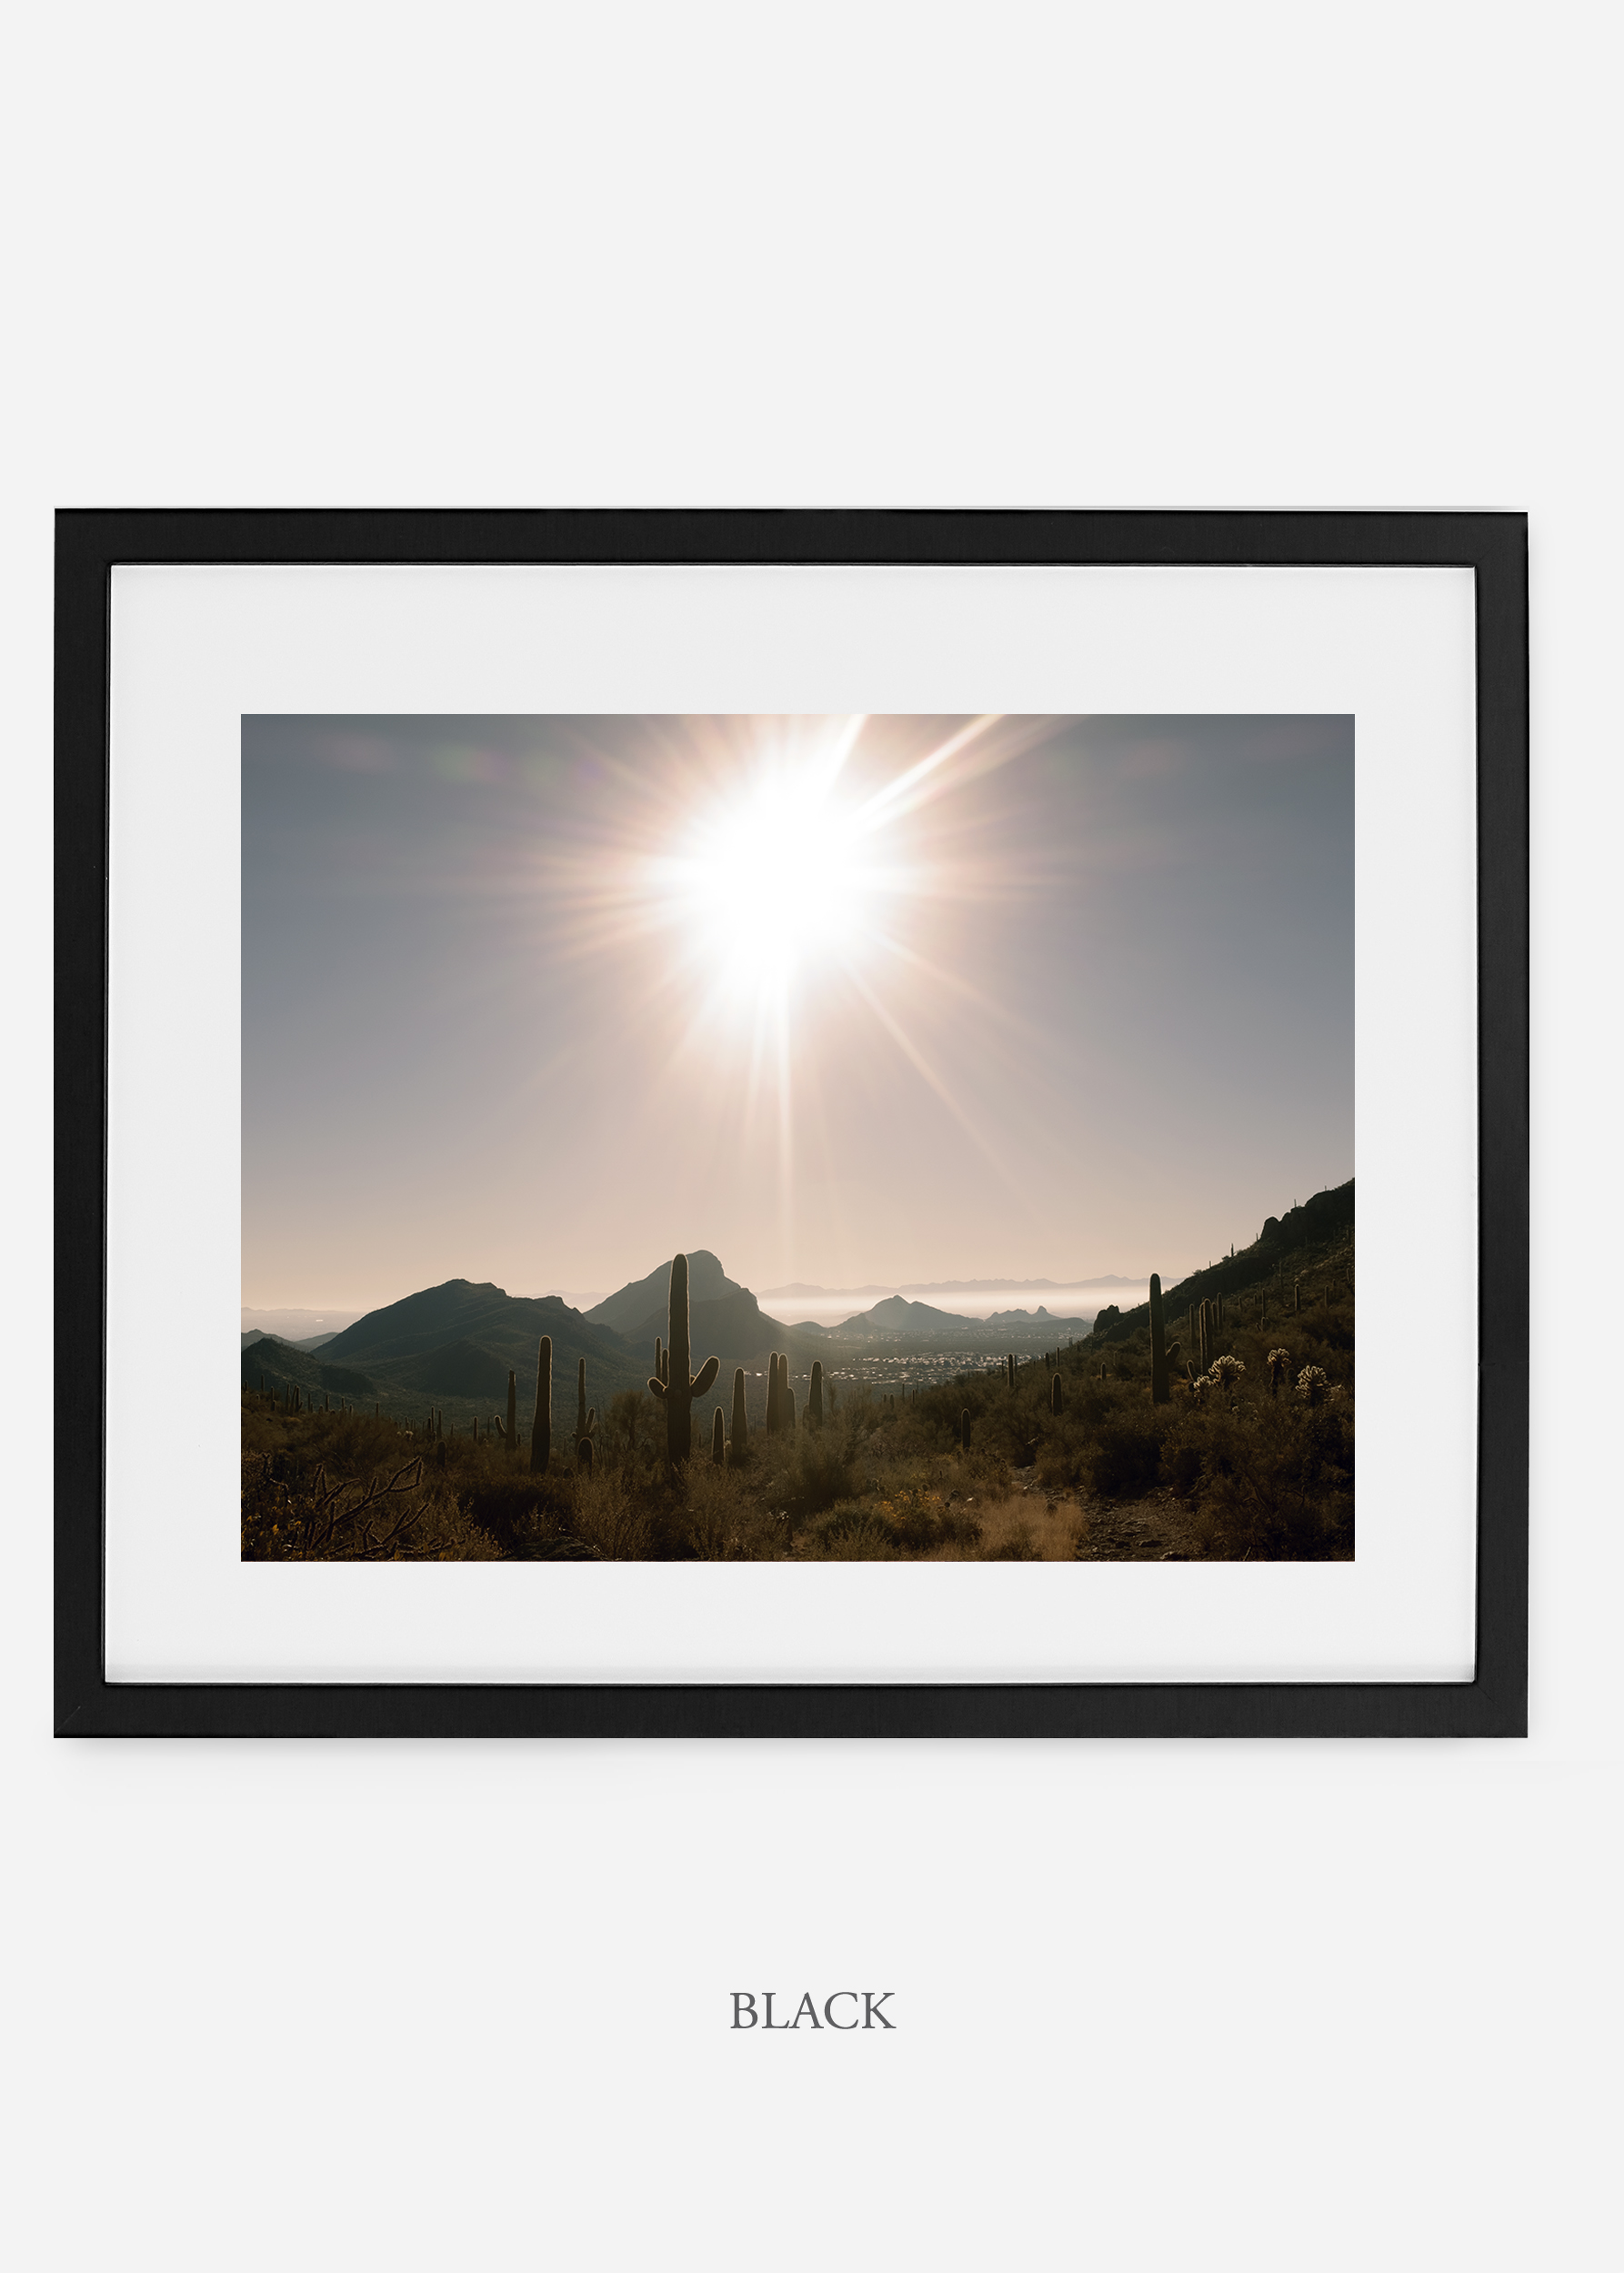 blackframe-saguaroNo.15-wildercalifornia-art-wallart-cactusprint-homedecor-prints-arizona-botanical-artwork-interiordesign.jpg